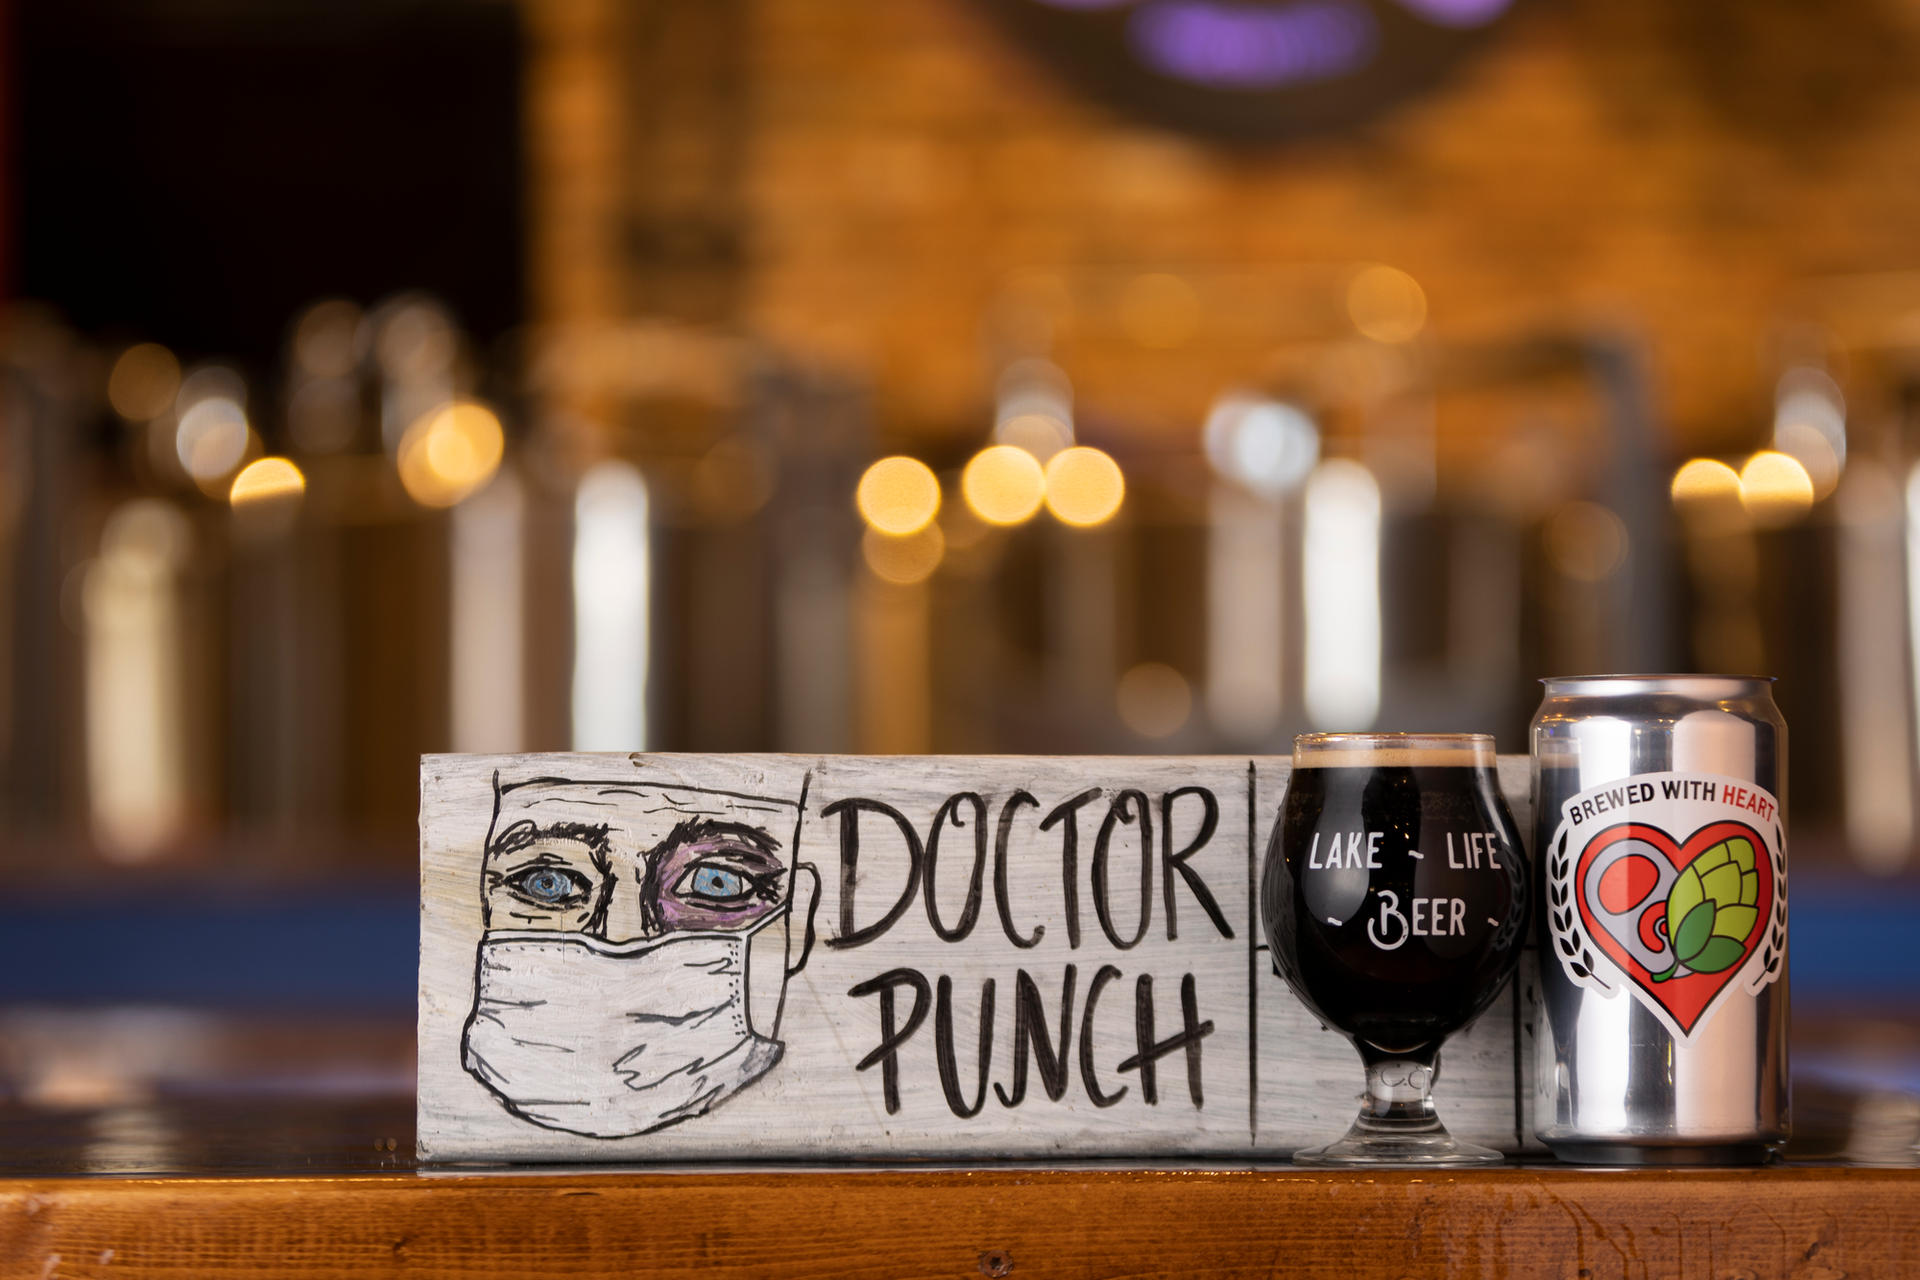 Doctor Punch